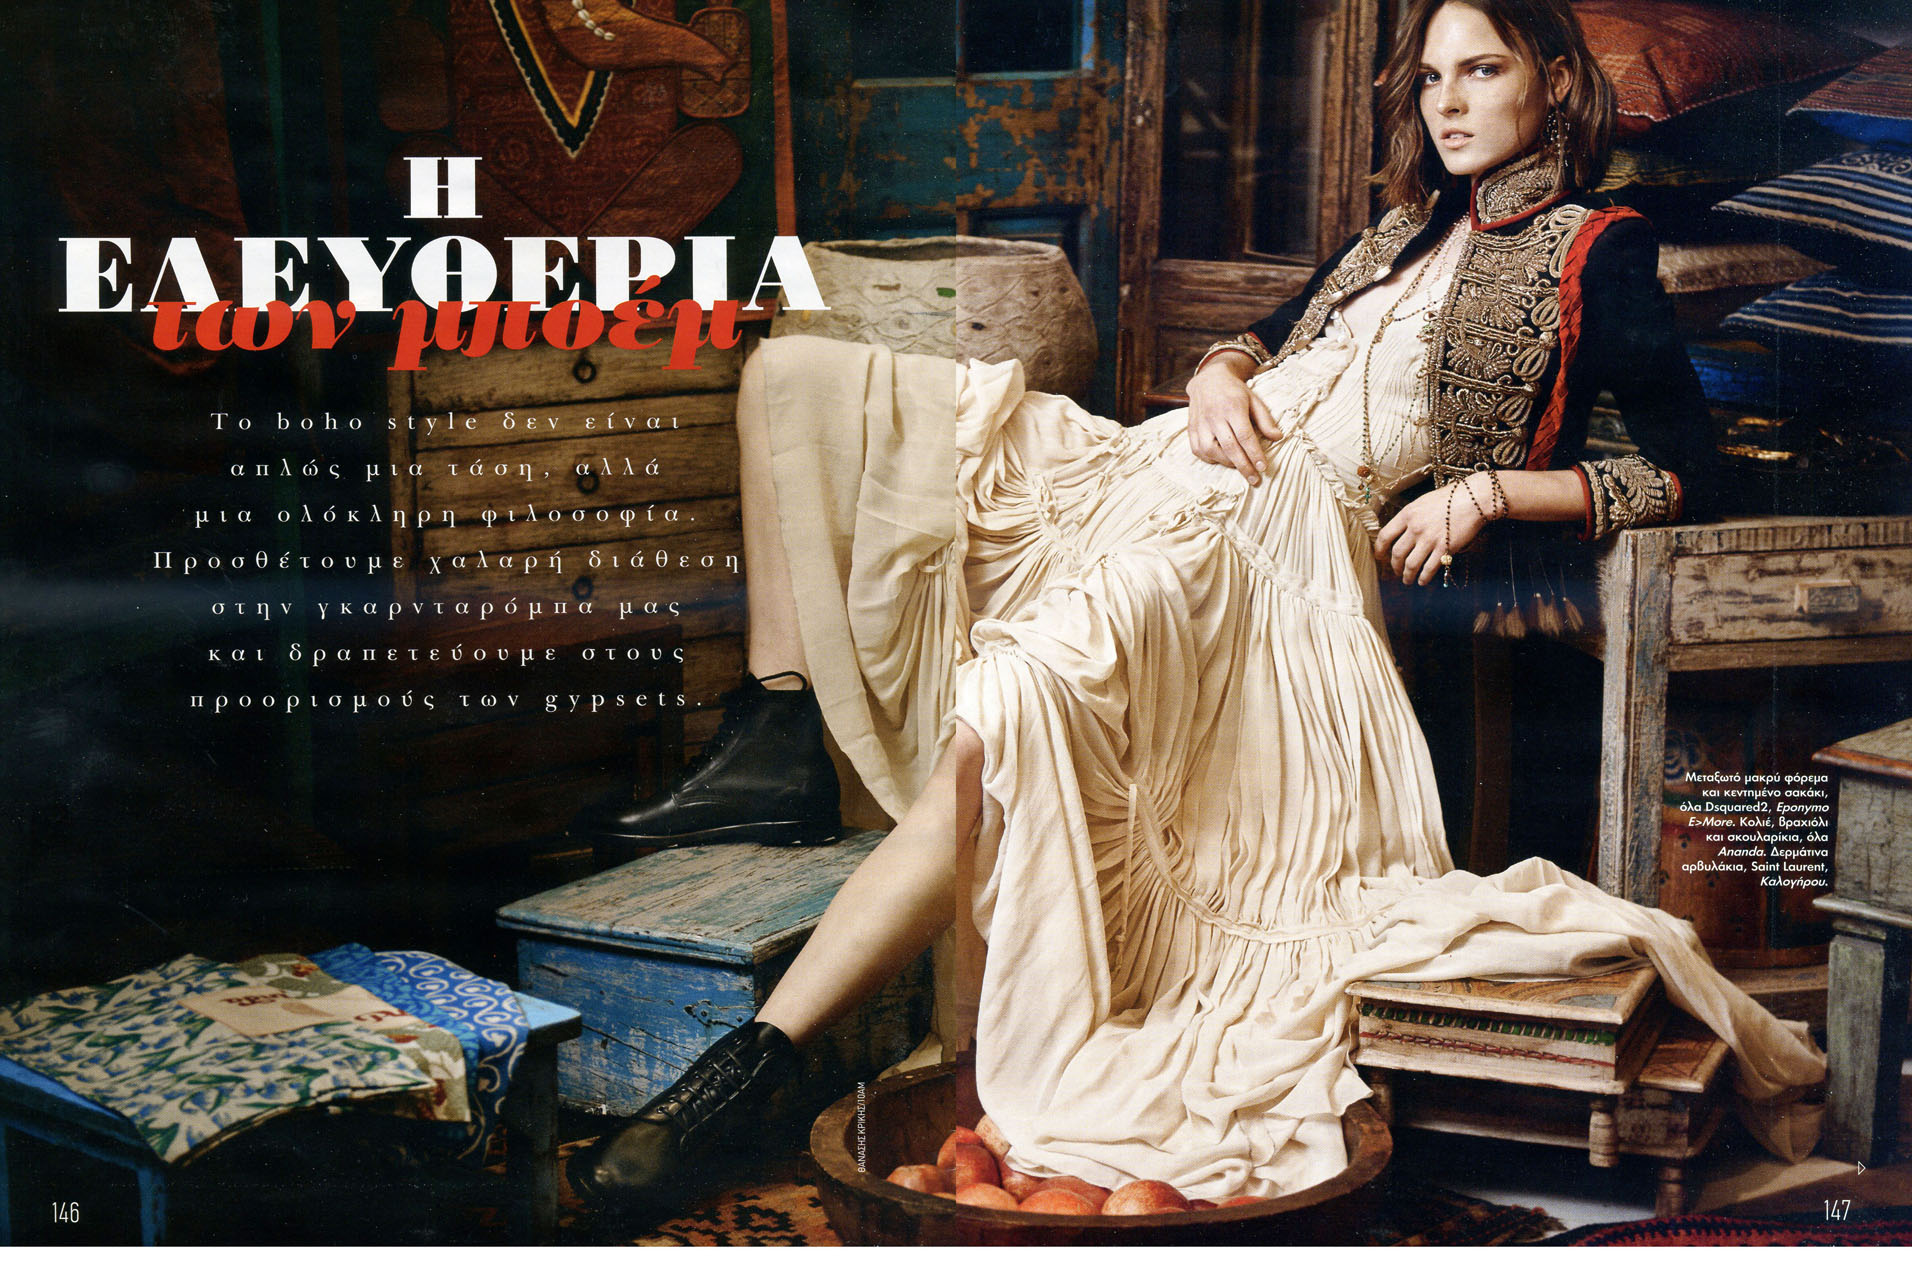 Polina Sova explores bohemianism for Elle.